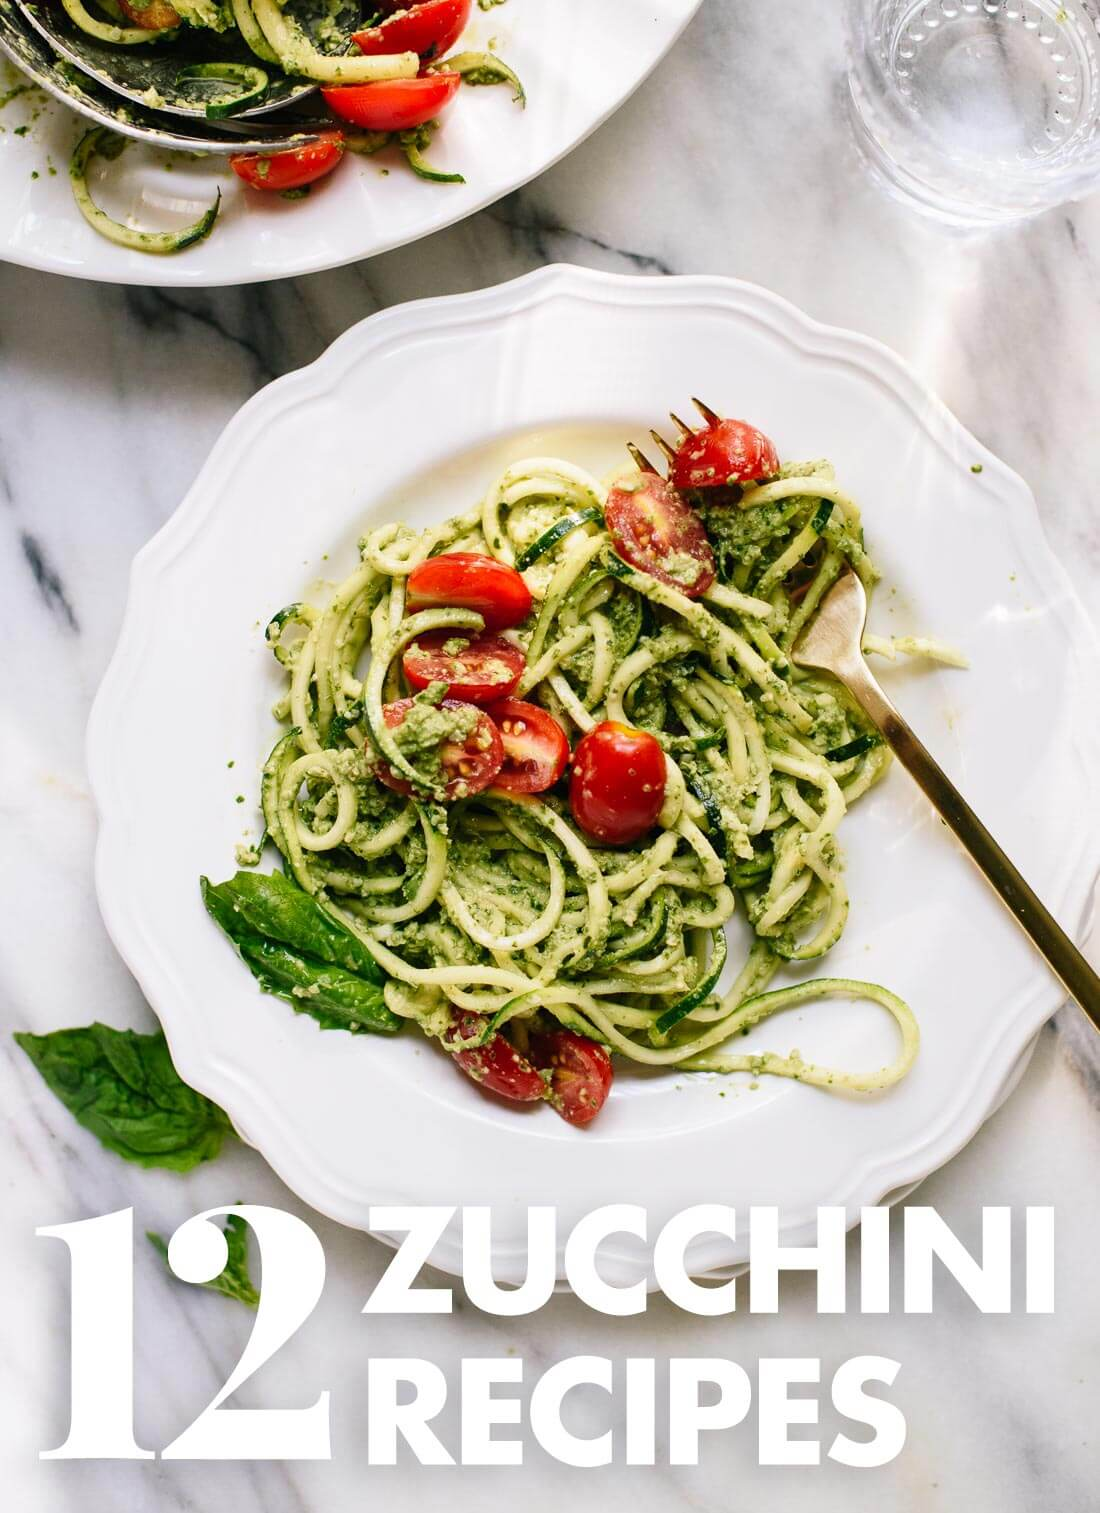 Find 12 healthy and light zucchini recipes here! Zucchini noodle pastas, quinoa salads, and more. cookieandkate.com